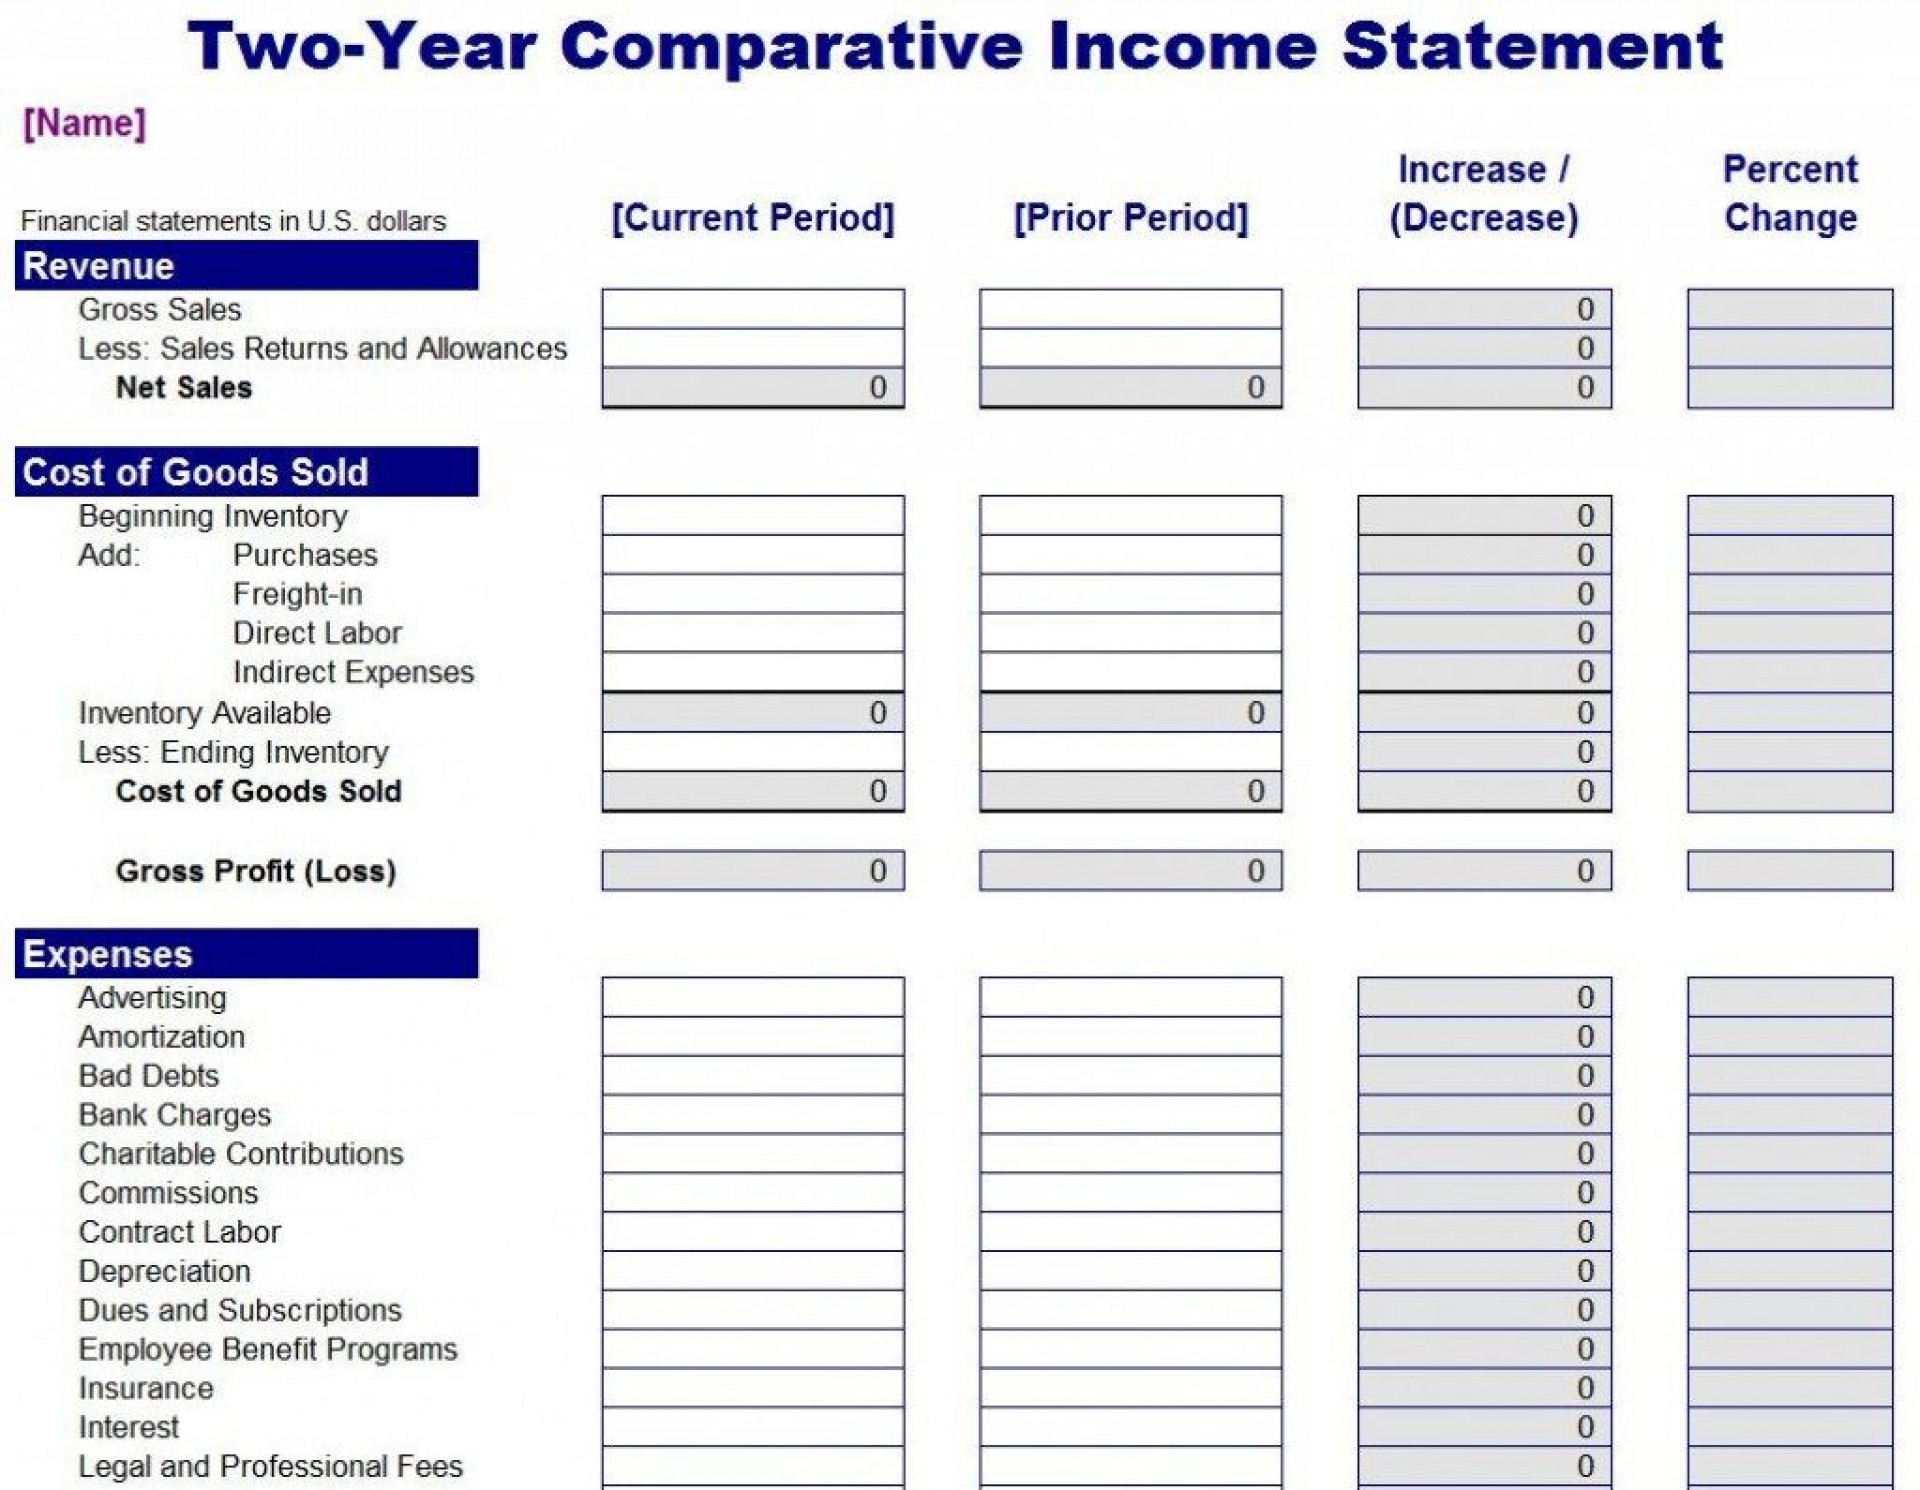 001 Singular Income Statement Excel Template Idea  Quarterly Simple Personal Expense1920